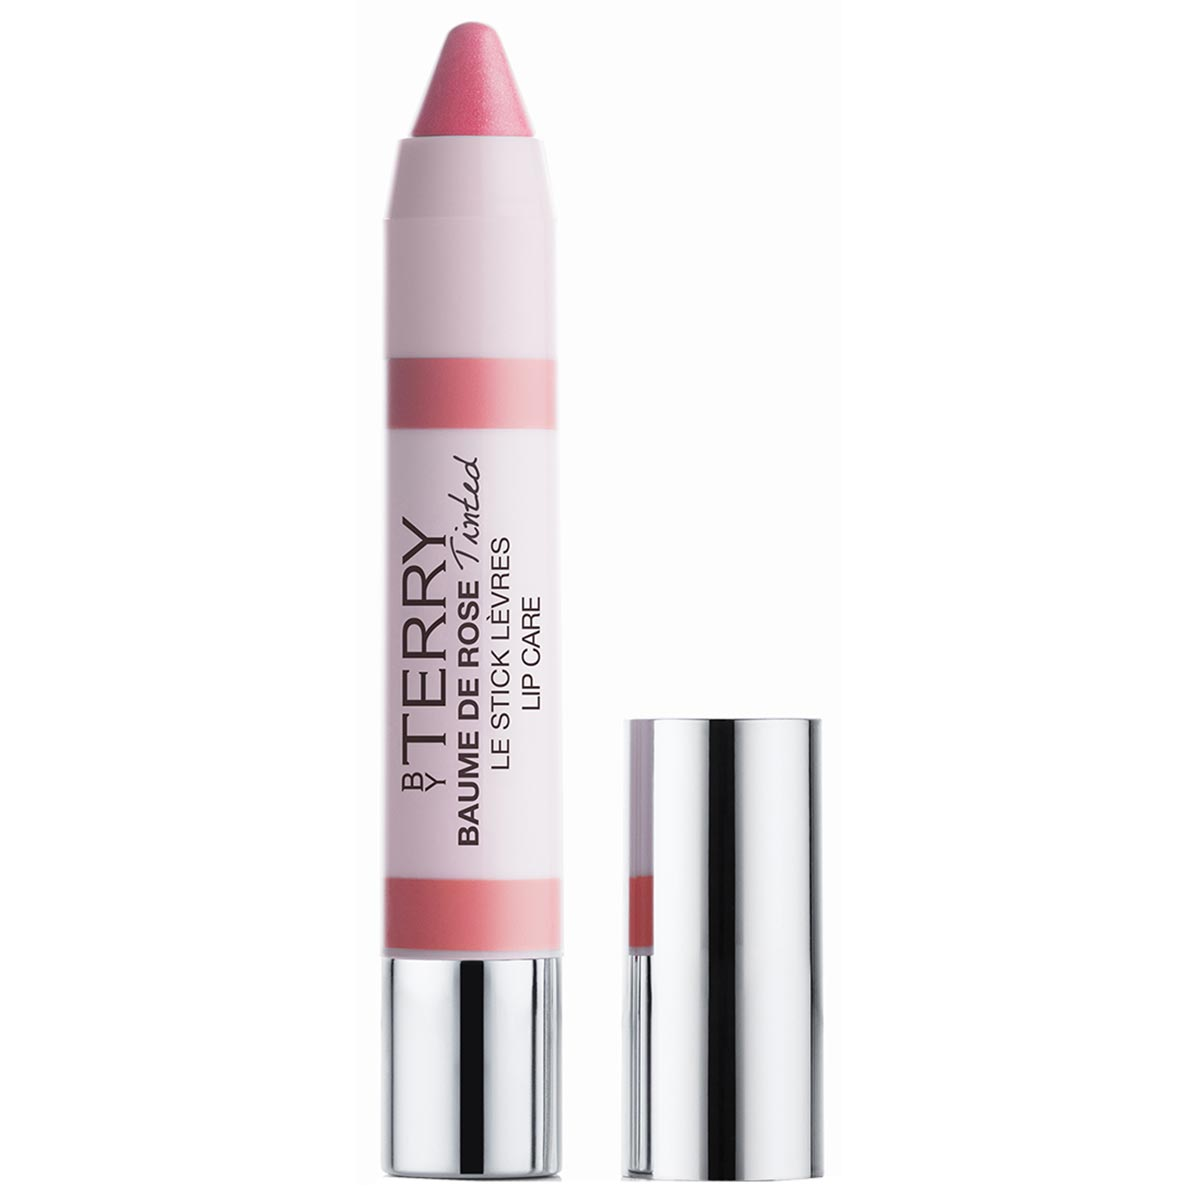 Baume De Rose Tinted Le Stick Levres Lip Care 2.3 g By Terry Läppbalsam